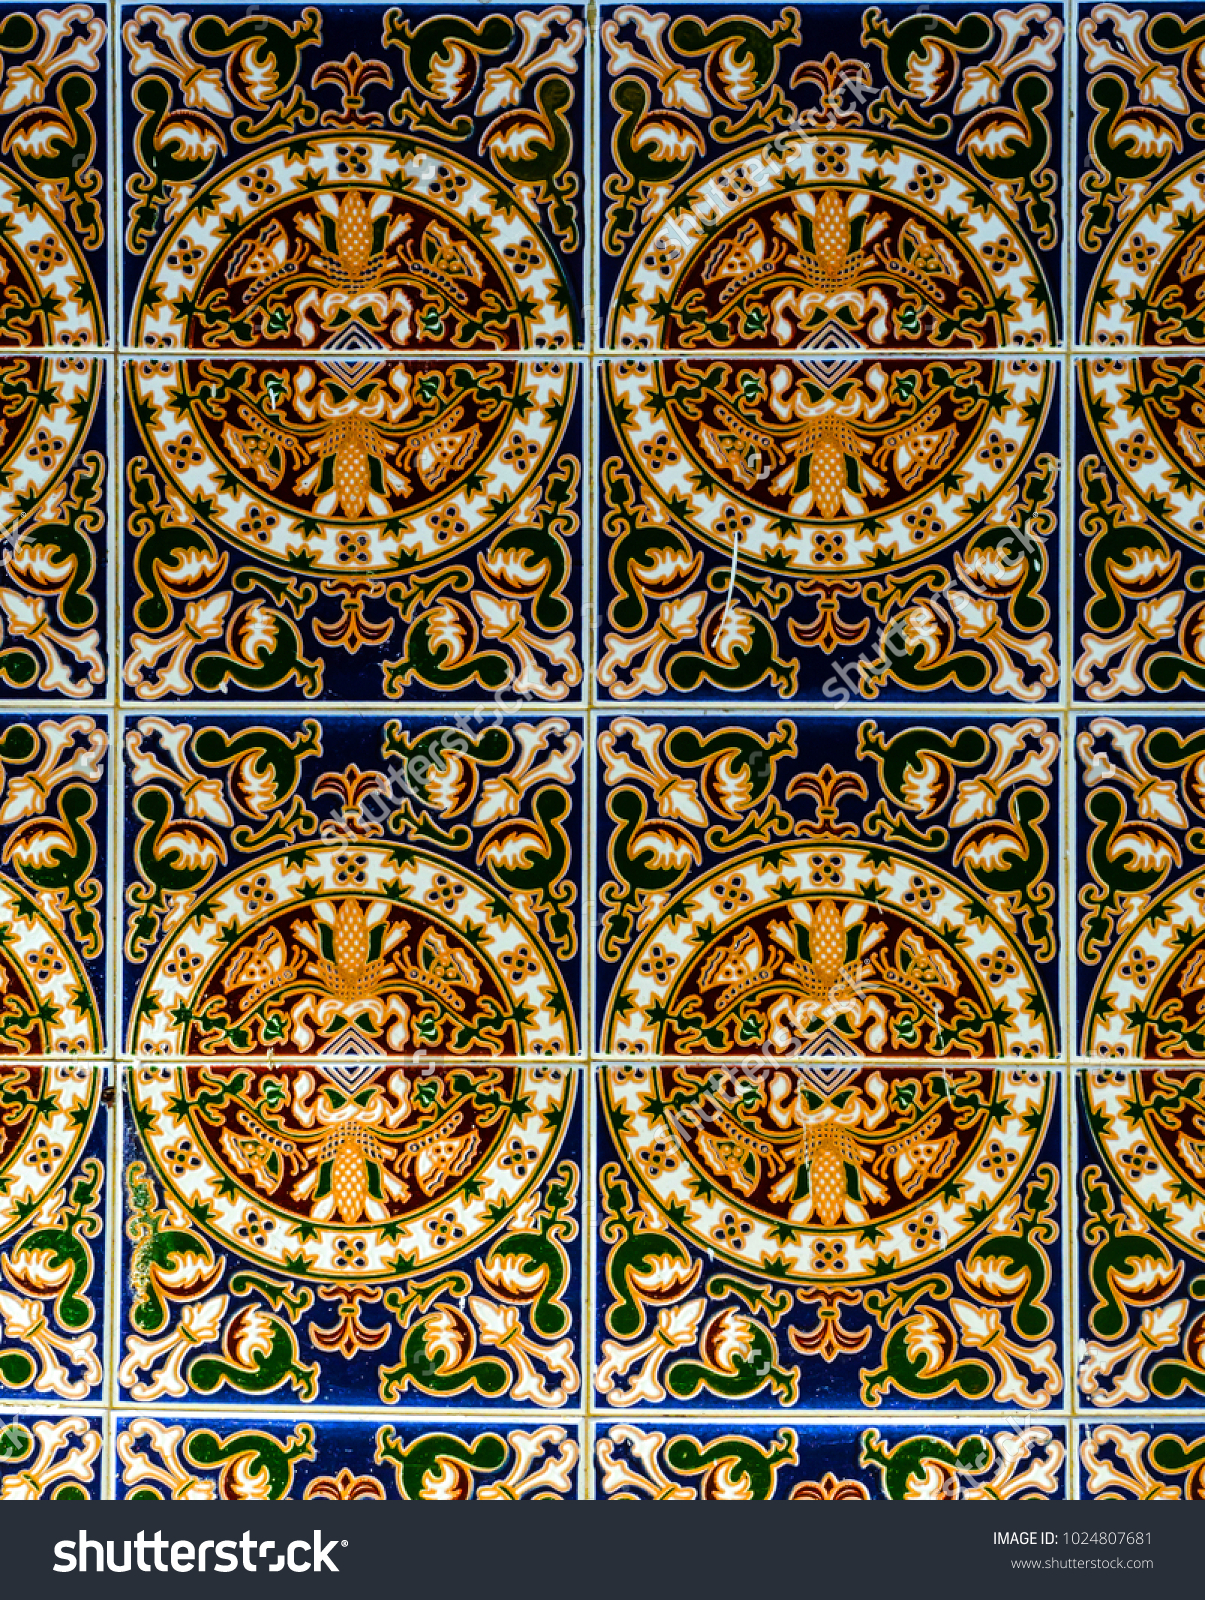 Traditional Ornamental Spanish Decorative Tiles Original Within Spanish Ornamental Wall Decor (View 16 of 30)